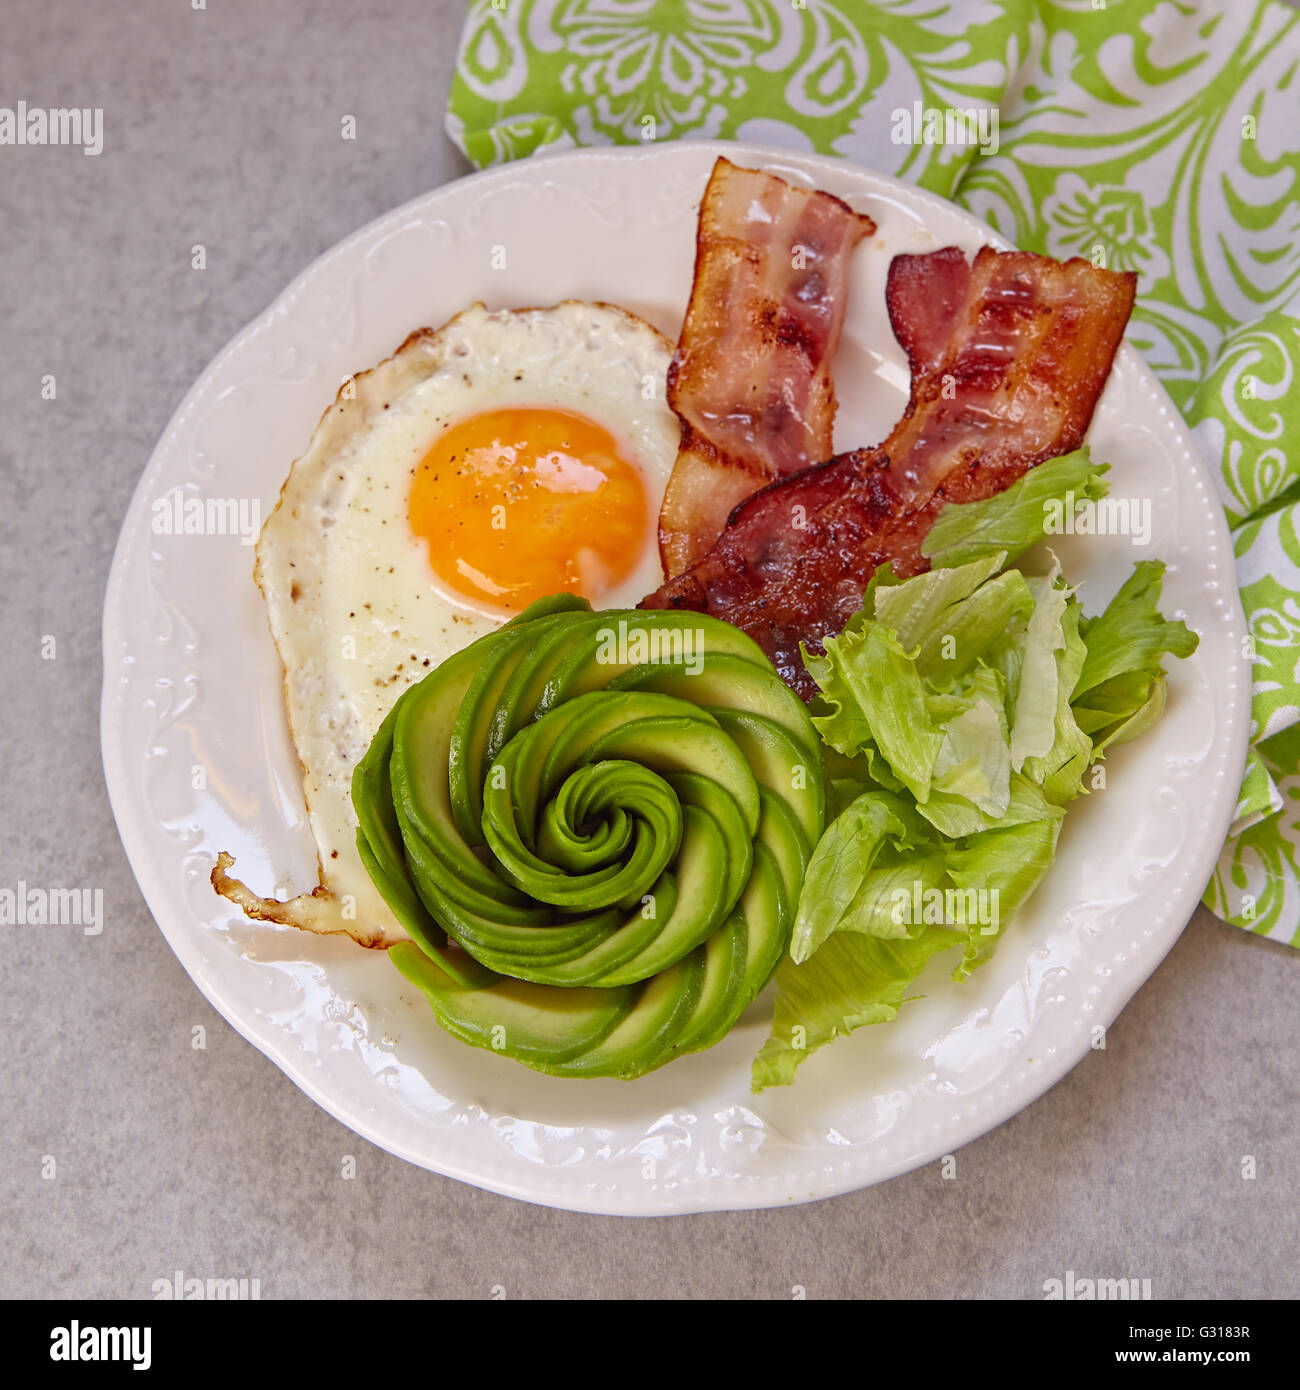 Fried Egg, Bacon and Avocado Rose for Breakfast - Stock Image